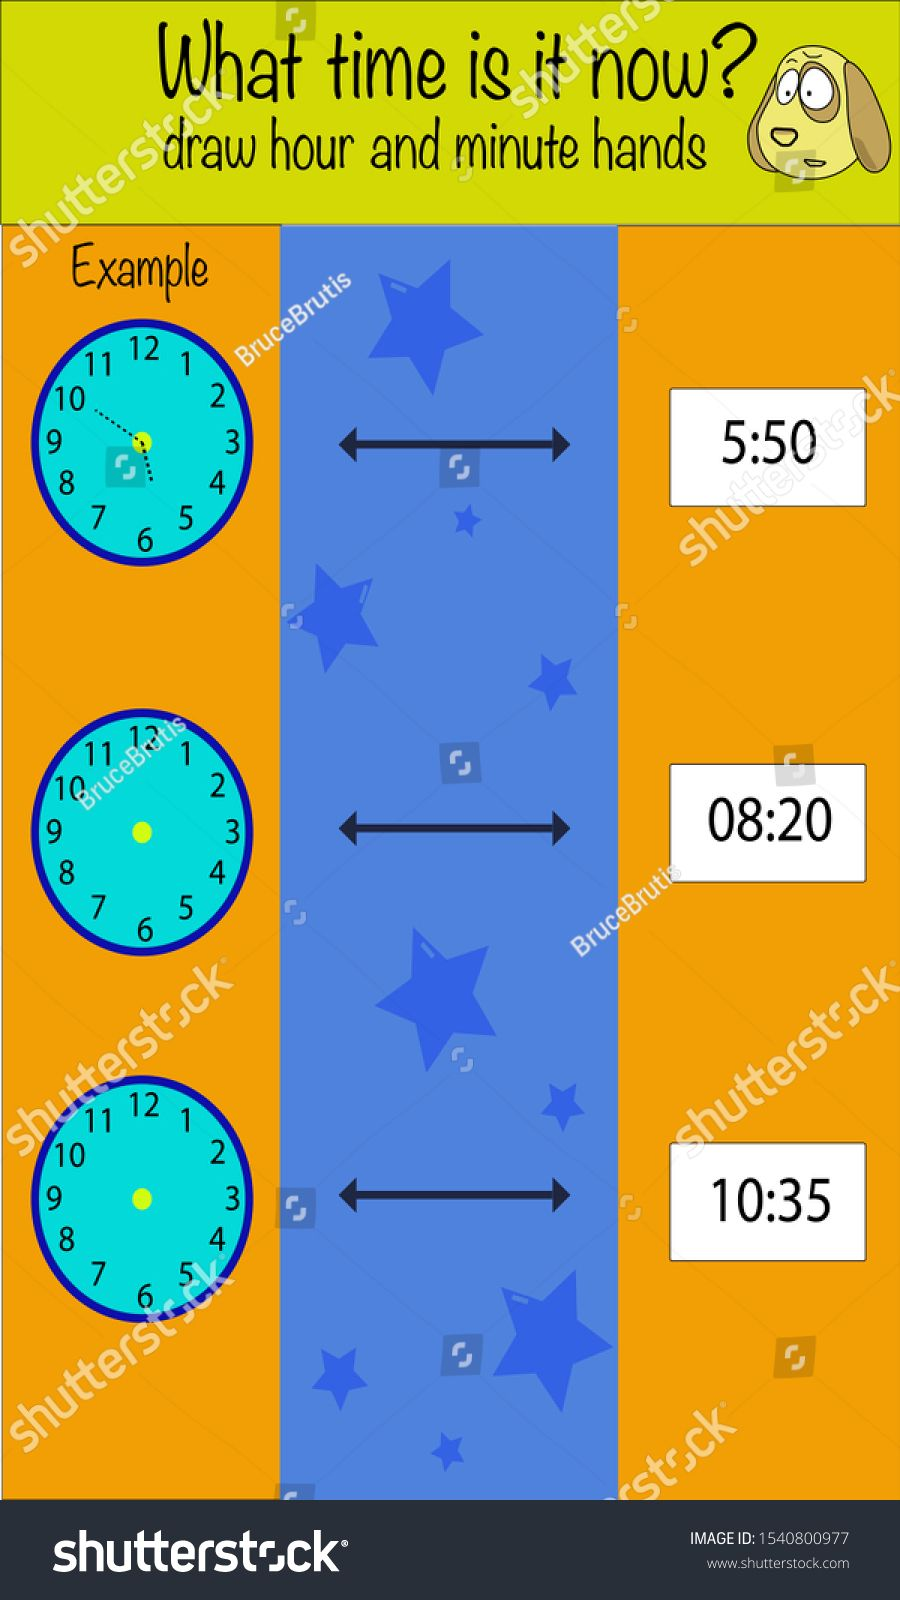 Puzzle Game For Children What Time Is It Now Preschool Worksheet Activity For Kids Education Game Brain Games Kids Worksheets Printables Worksheets For Kids [ 1600 x 900 Pixel ]